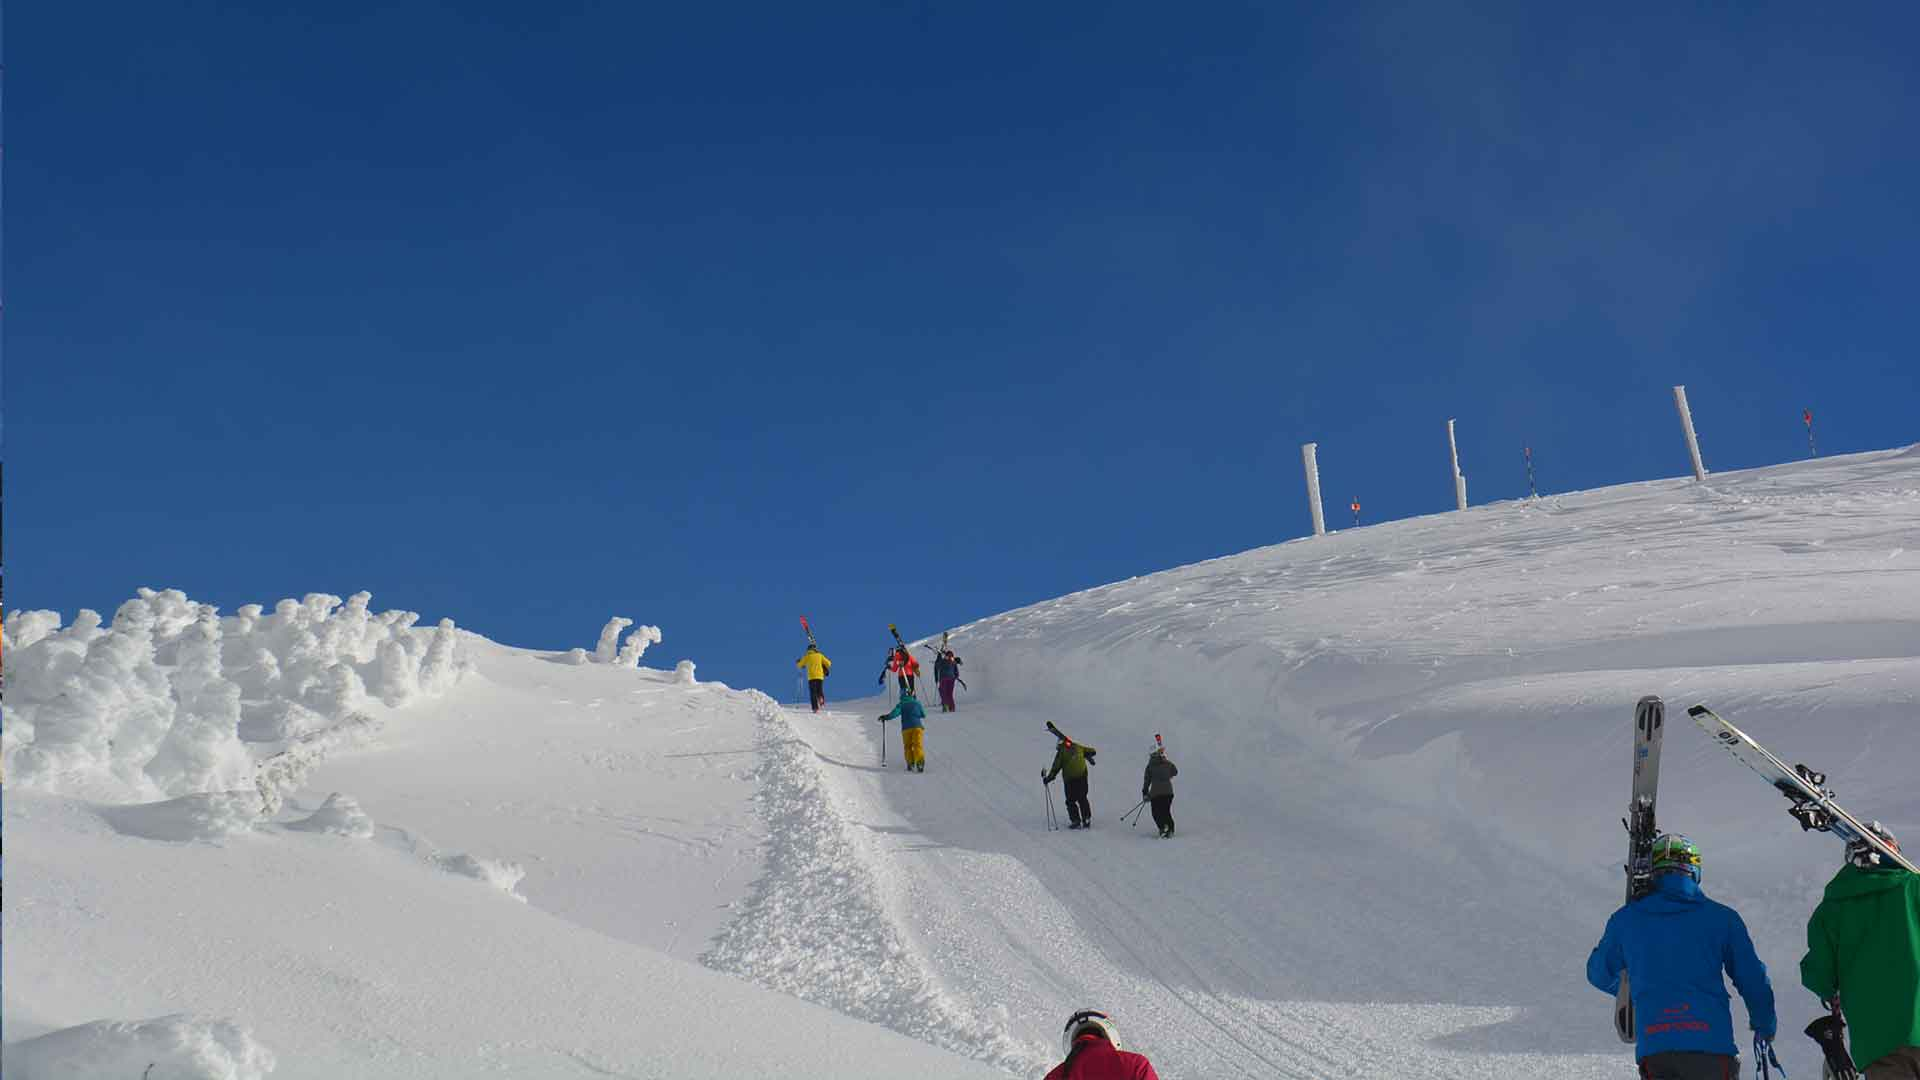 Hiking up with skis to descend Flute Bowl on Whistler Mountain